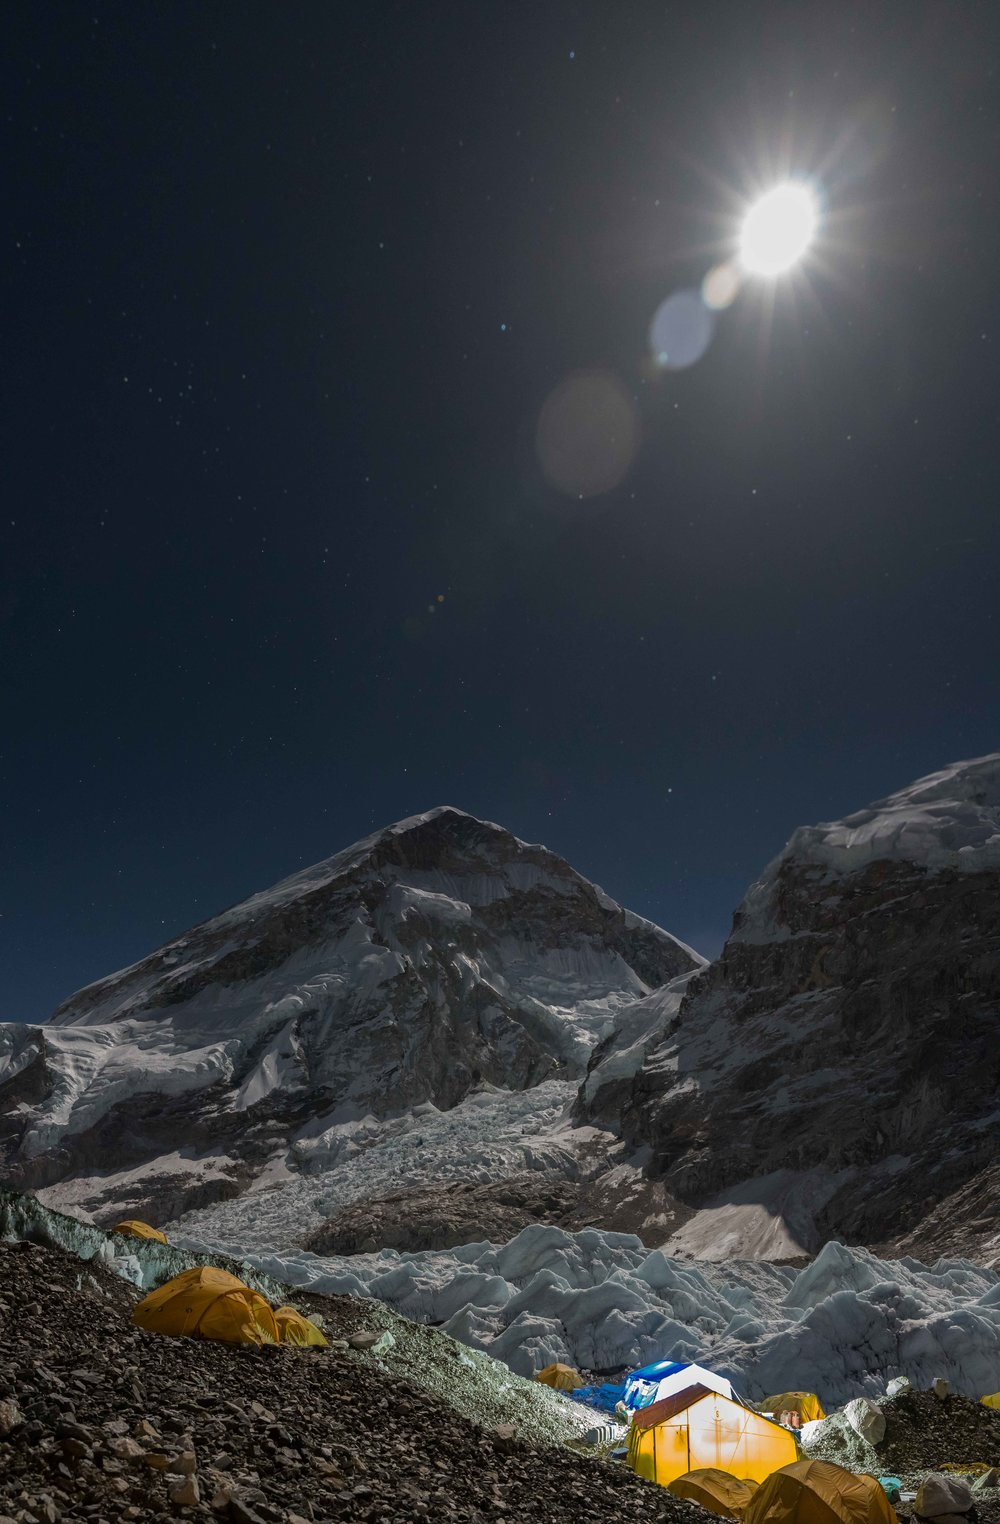 Everest Base Camp at night with the West Shoulder of Sagarmāthā in the distance